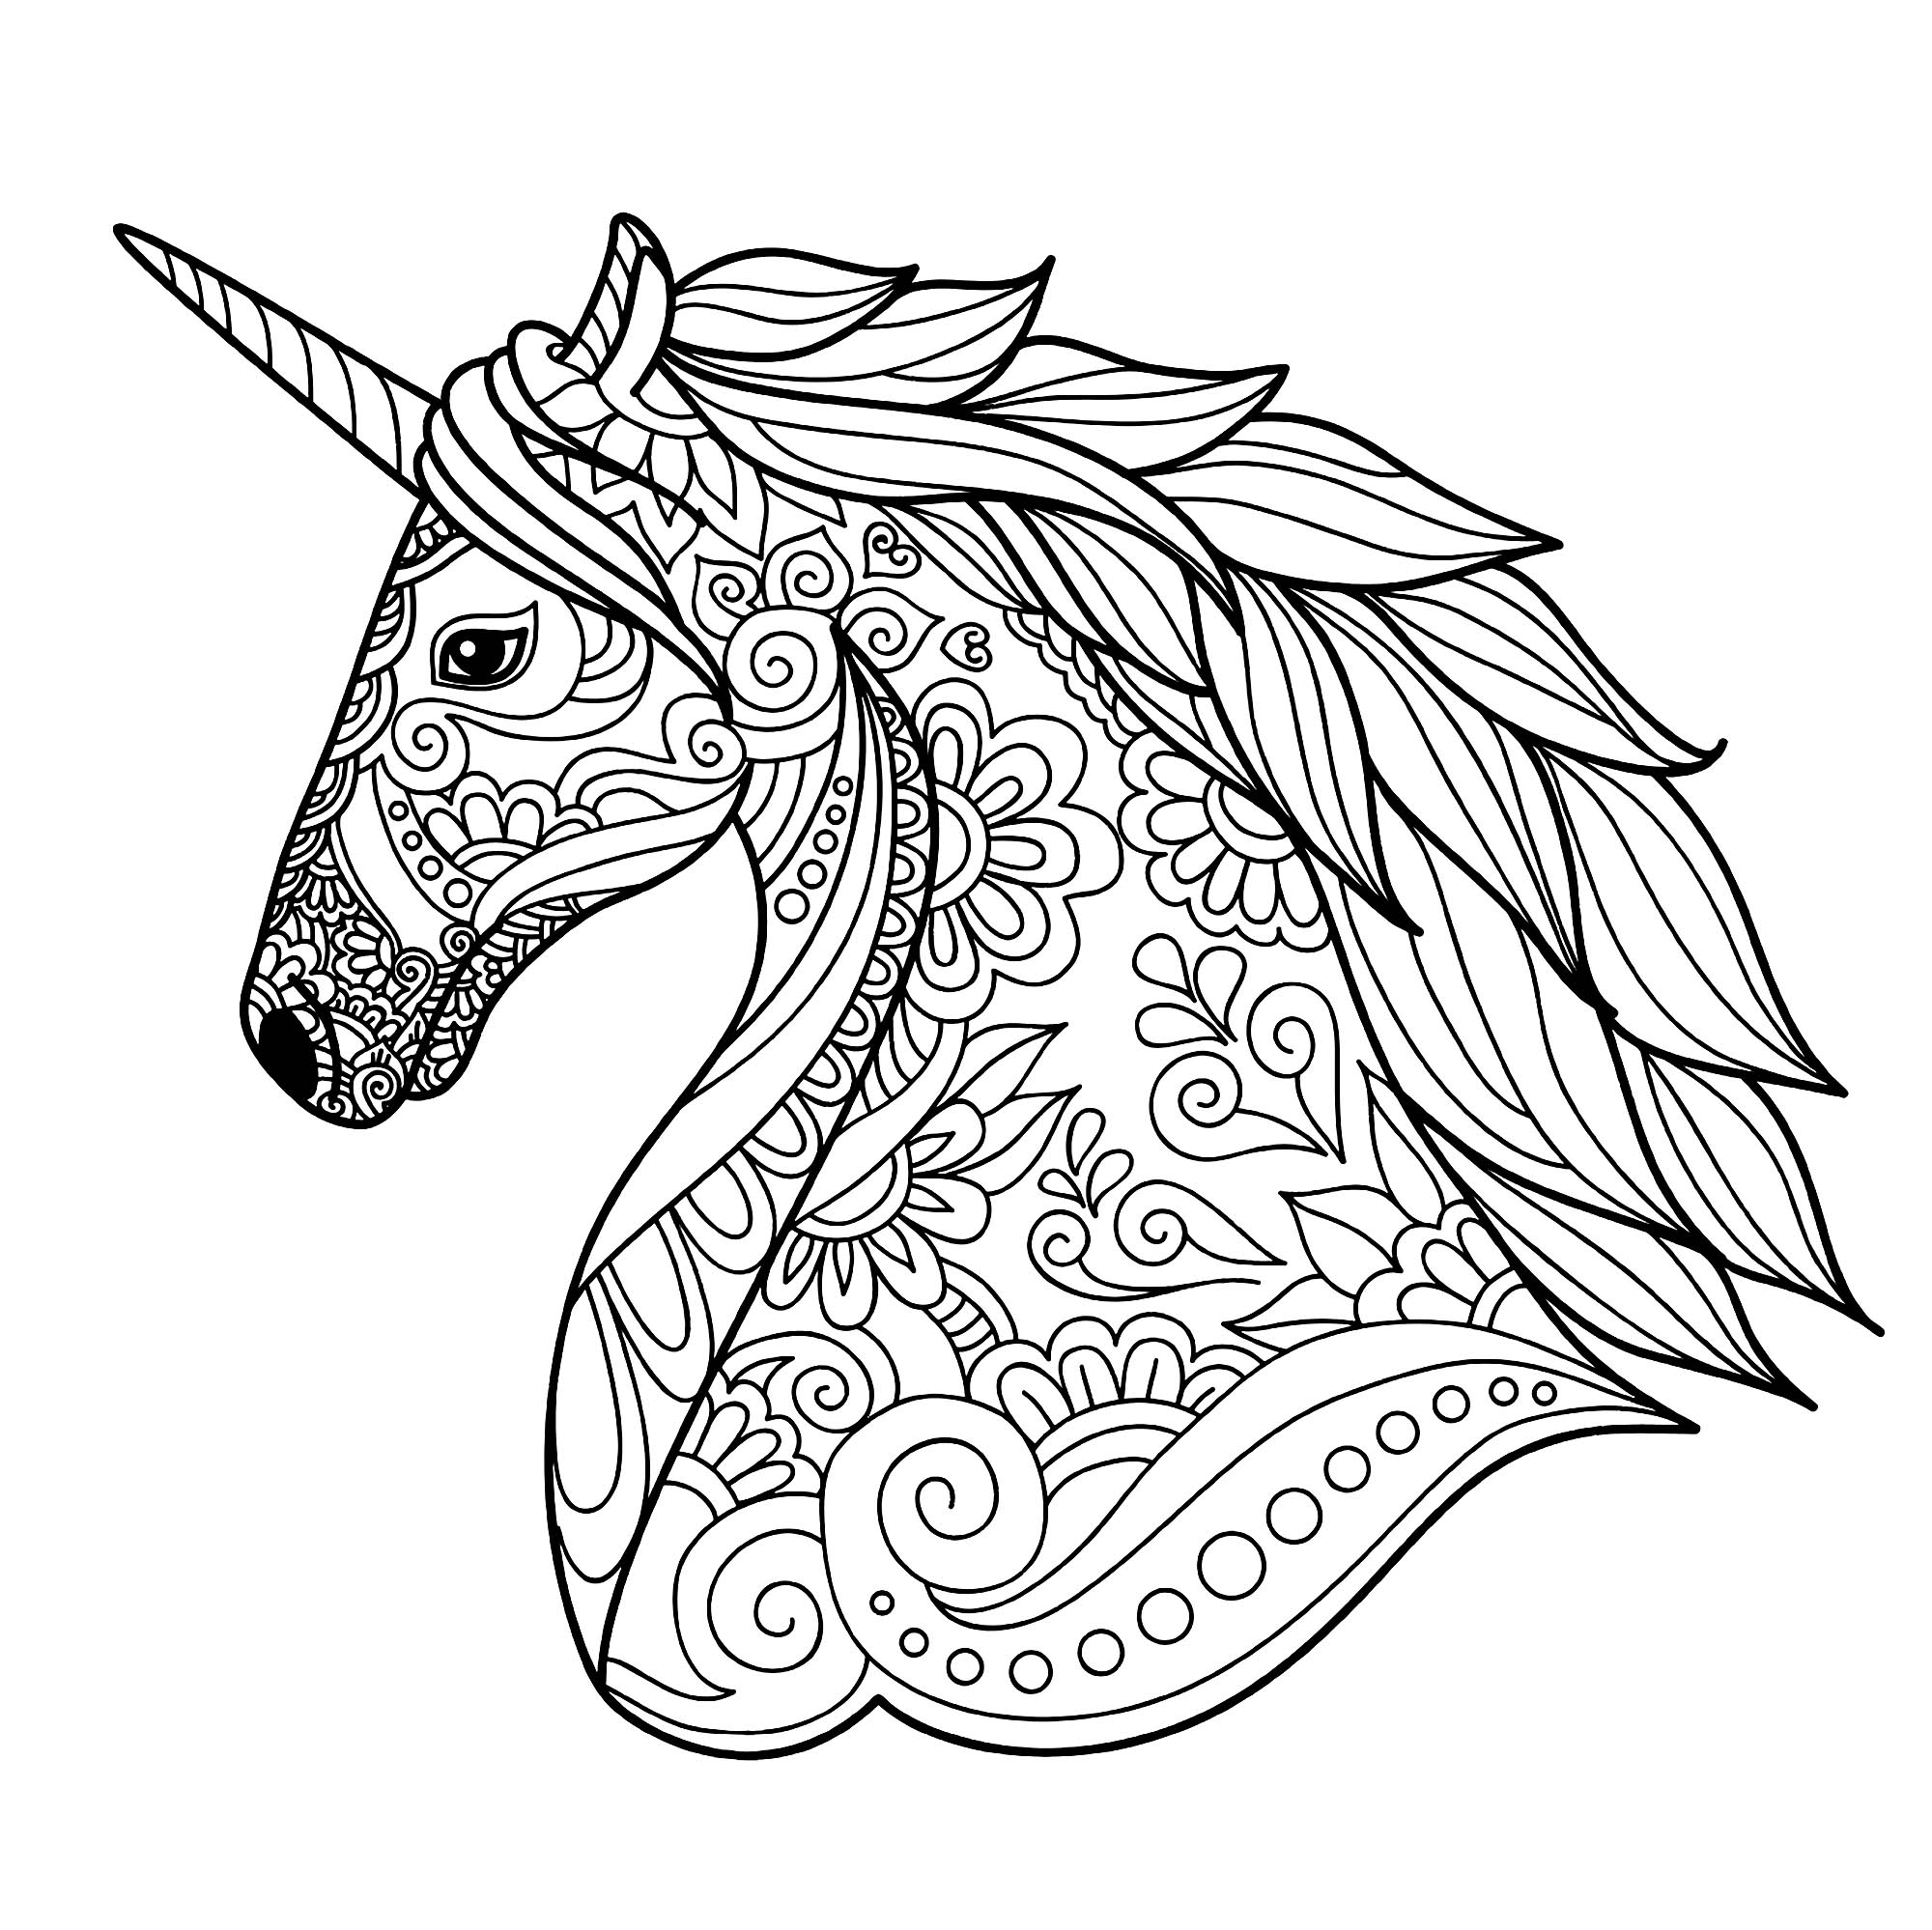 Unicorn head simple Unicorns Adult Coloring Pages